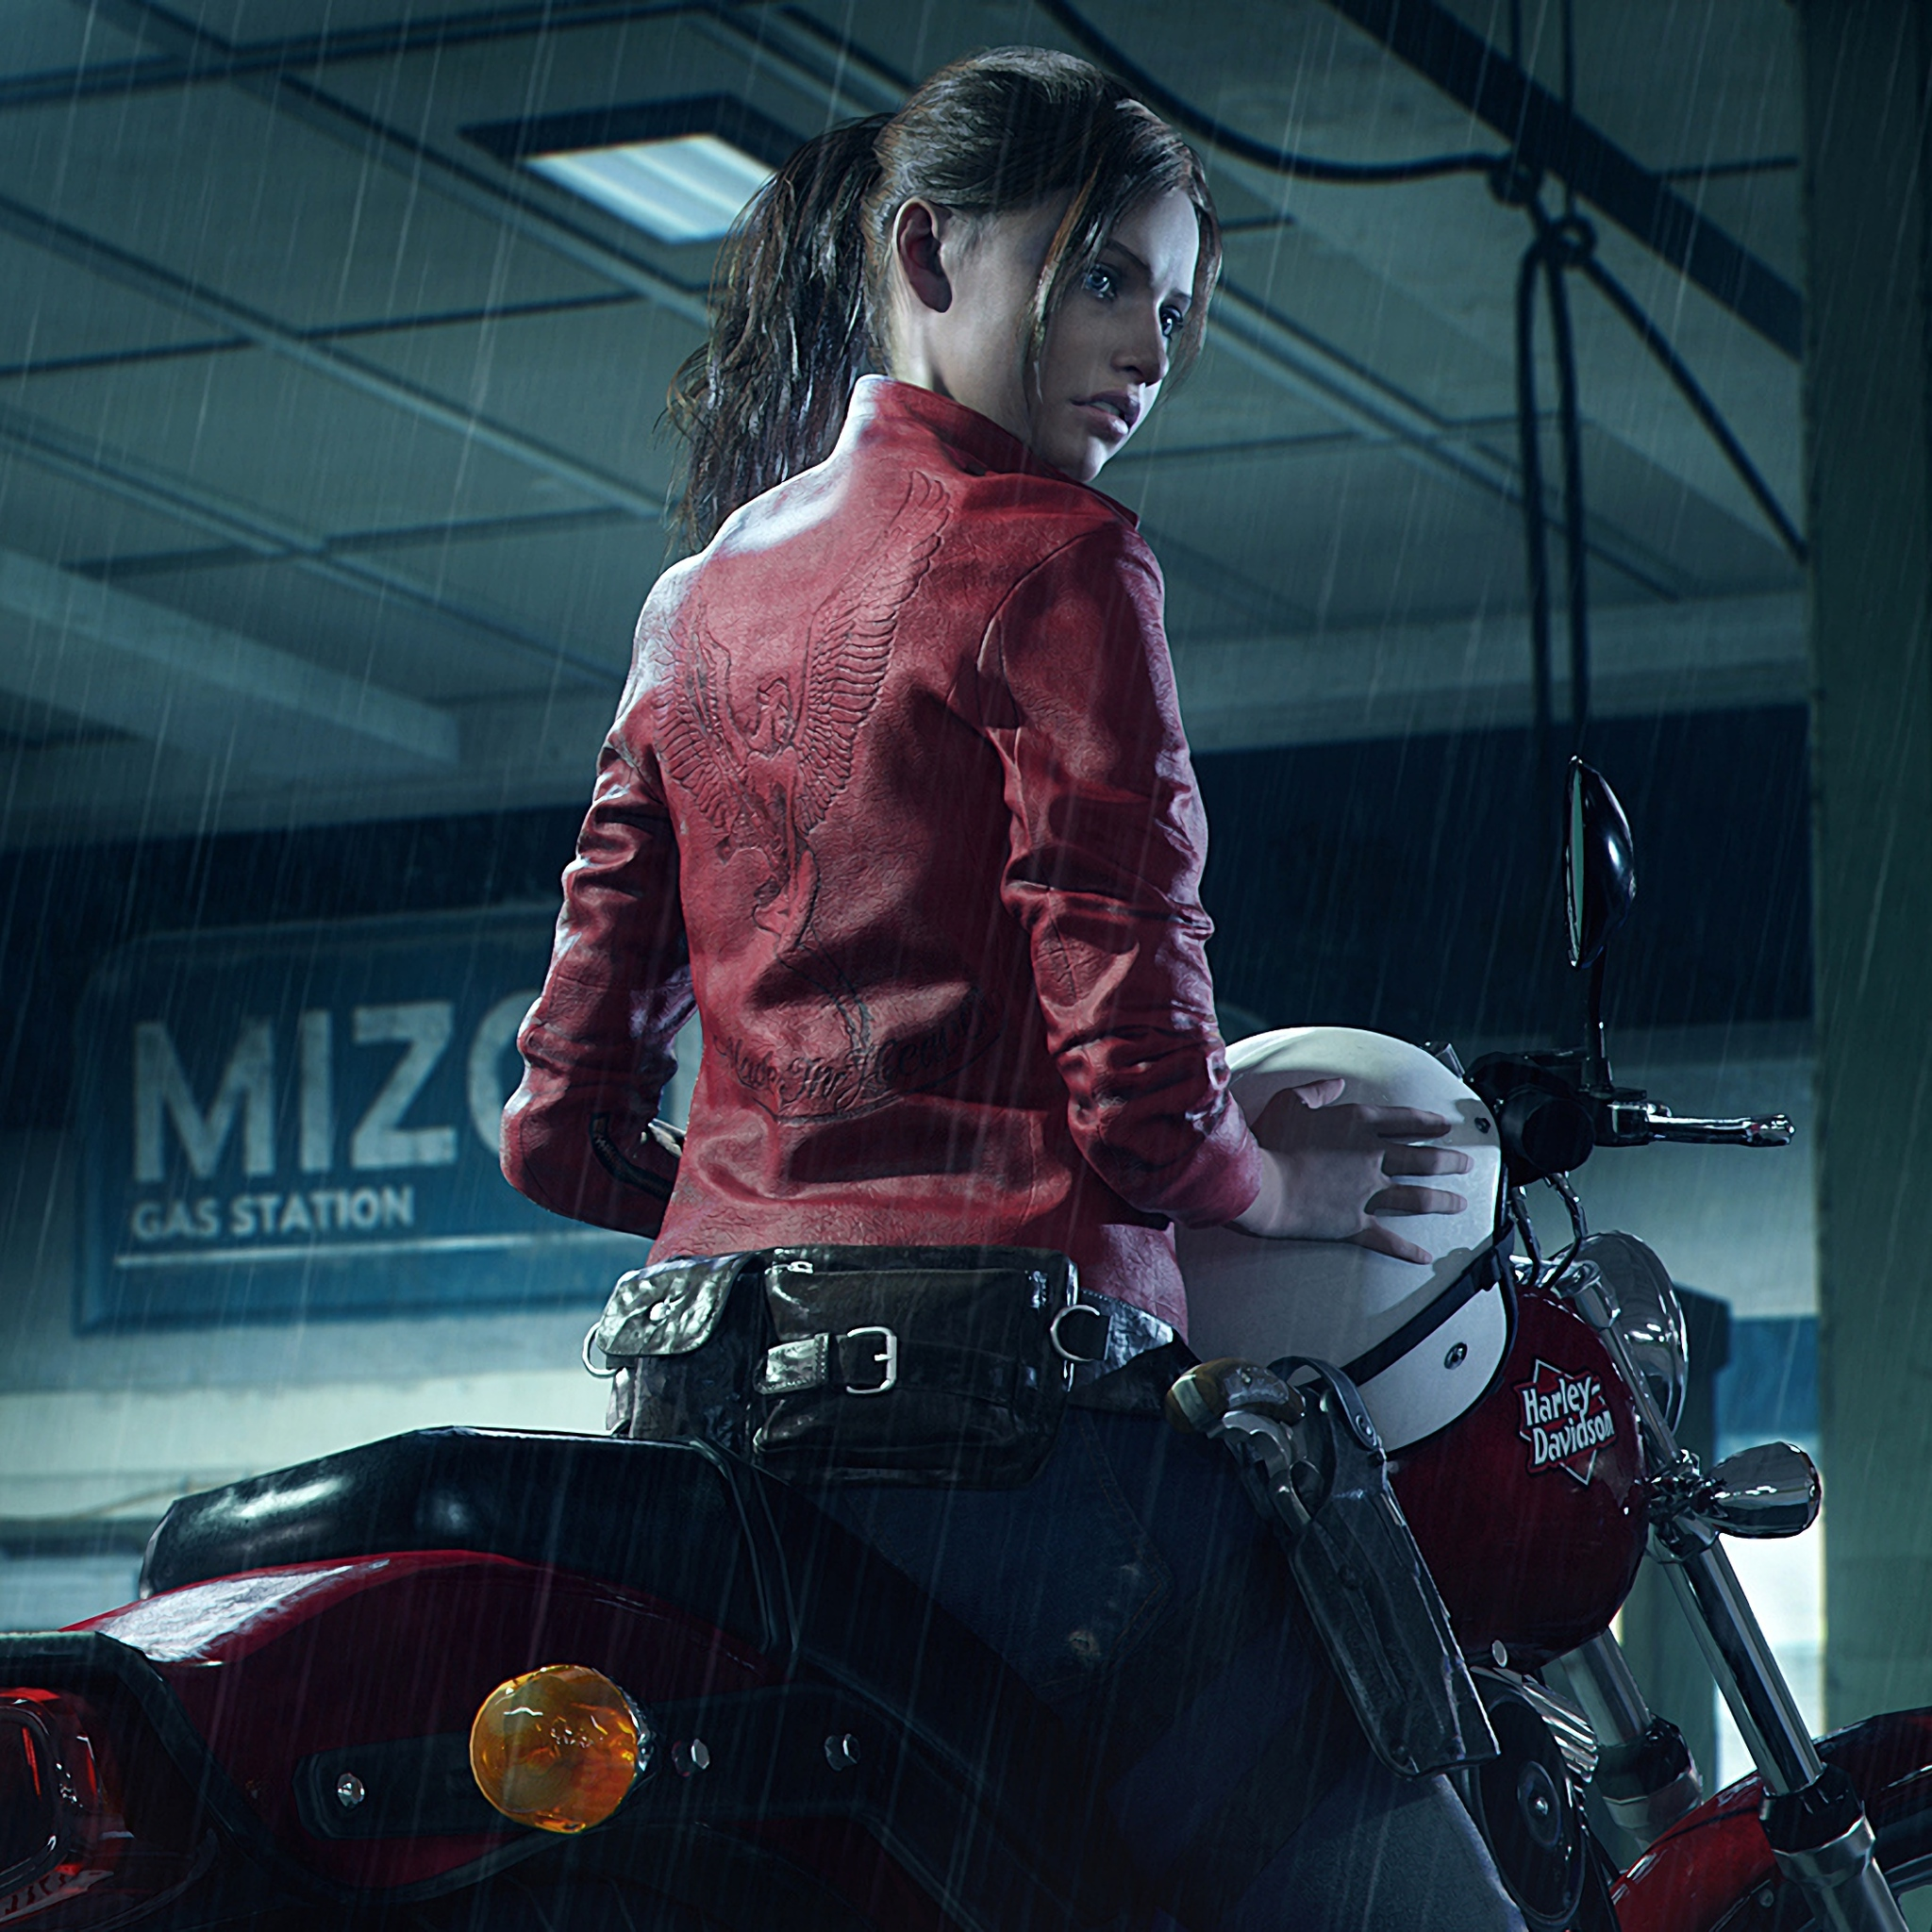 Resident Evil Hd Wallpaper: 2048x2048 Resident Evil 2 2019 Claire Redfield Harley